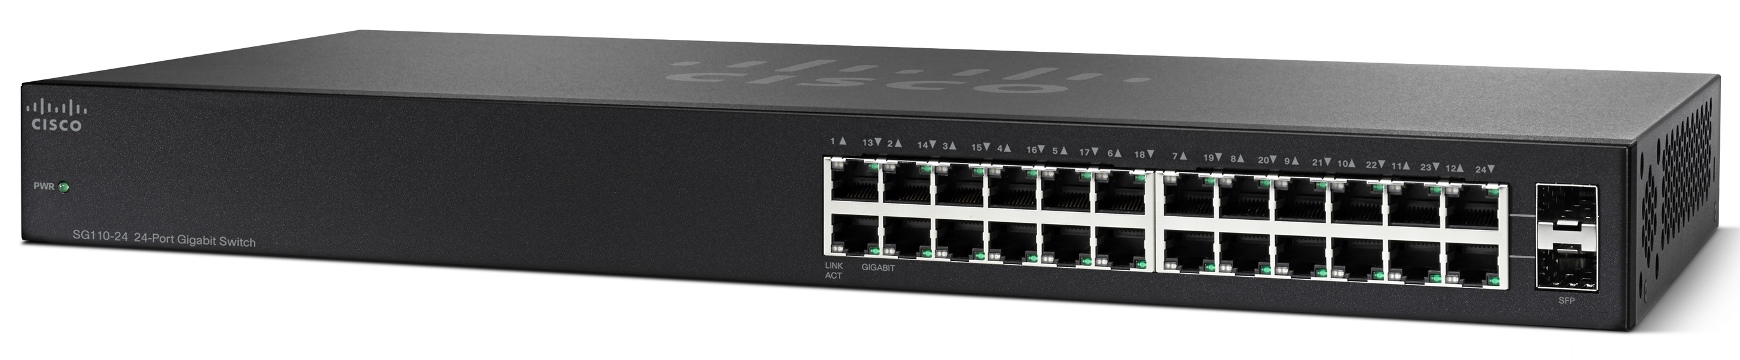 Cisco SG110-24, 24-port Gigabit switch